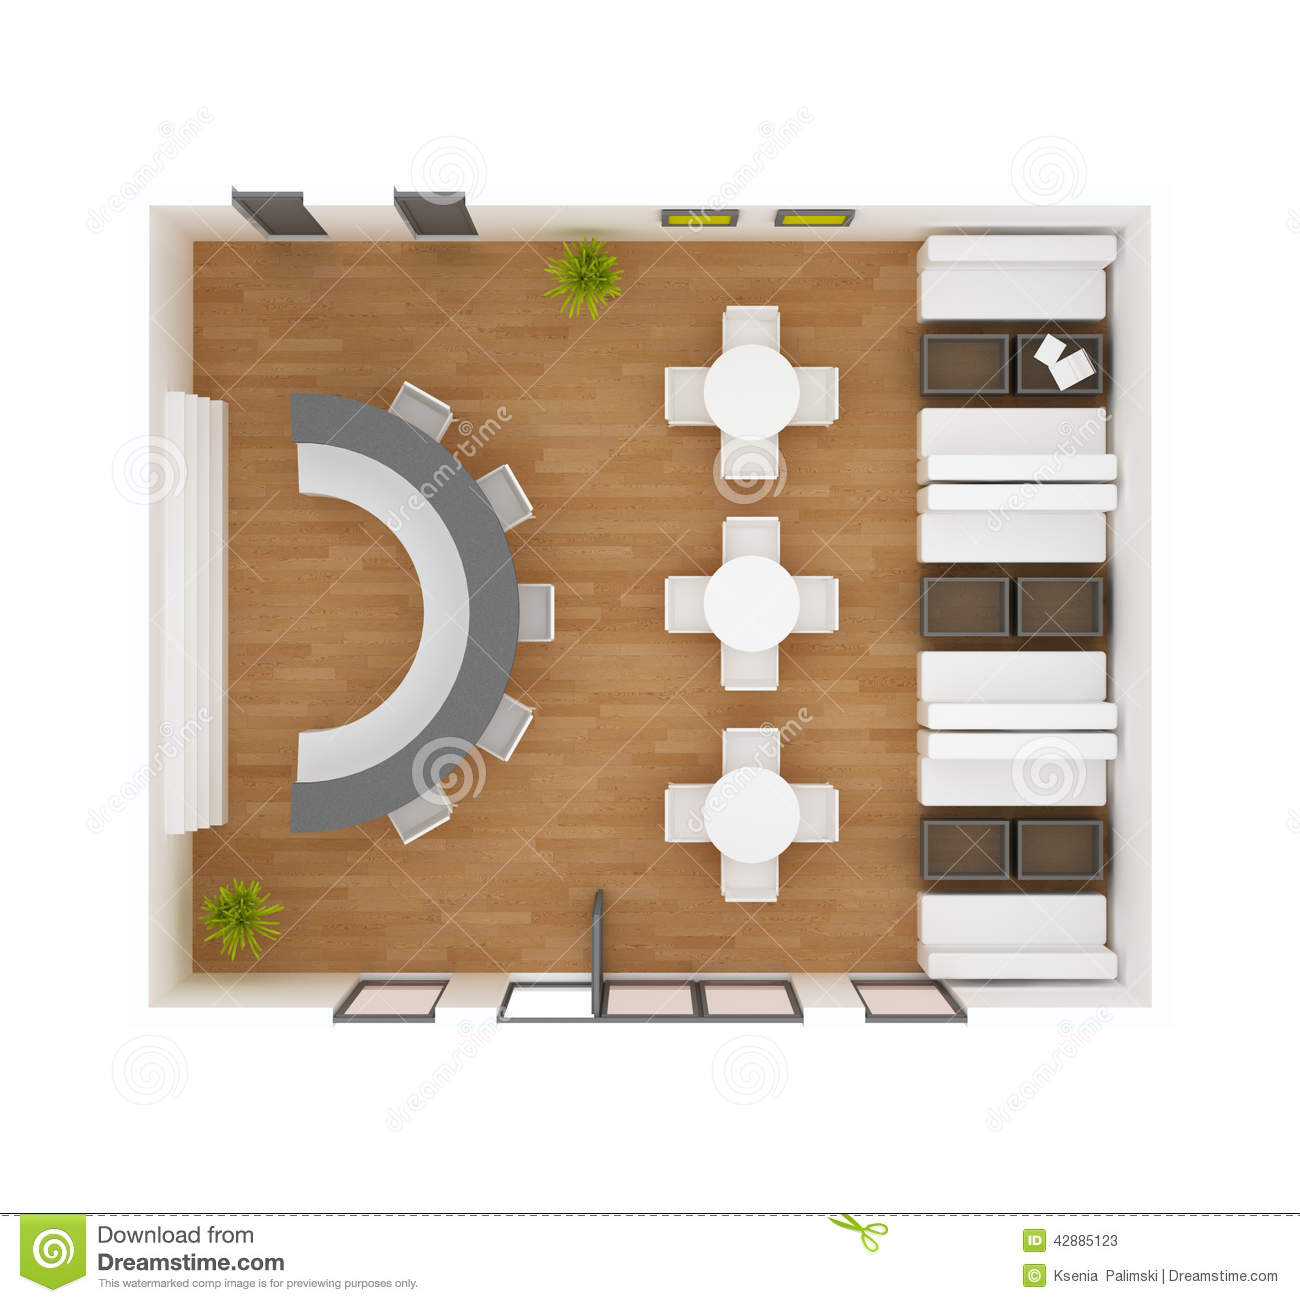 Cafe Bar Restaurant Floor Plan Stock Illustration - Image: 42885123